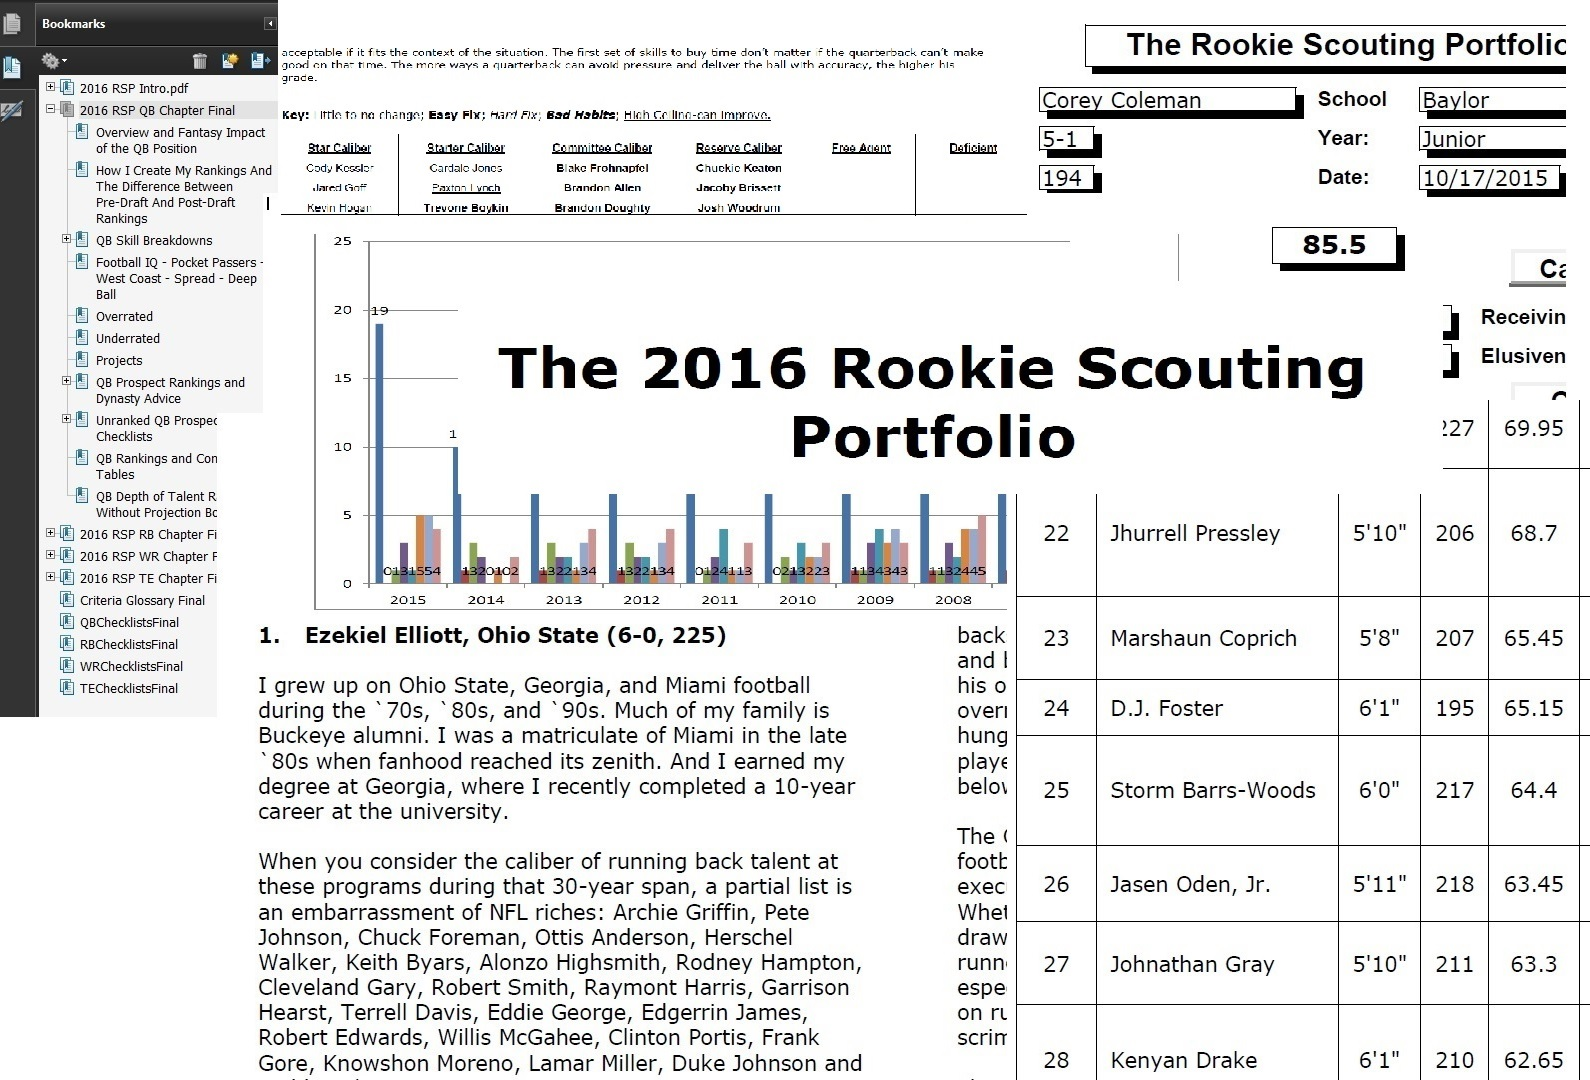 2016 Rookie Scouting Portfolio Now Available!